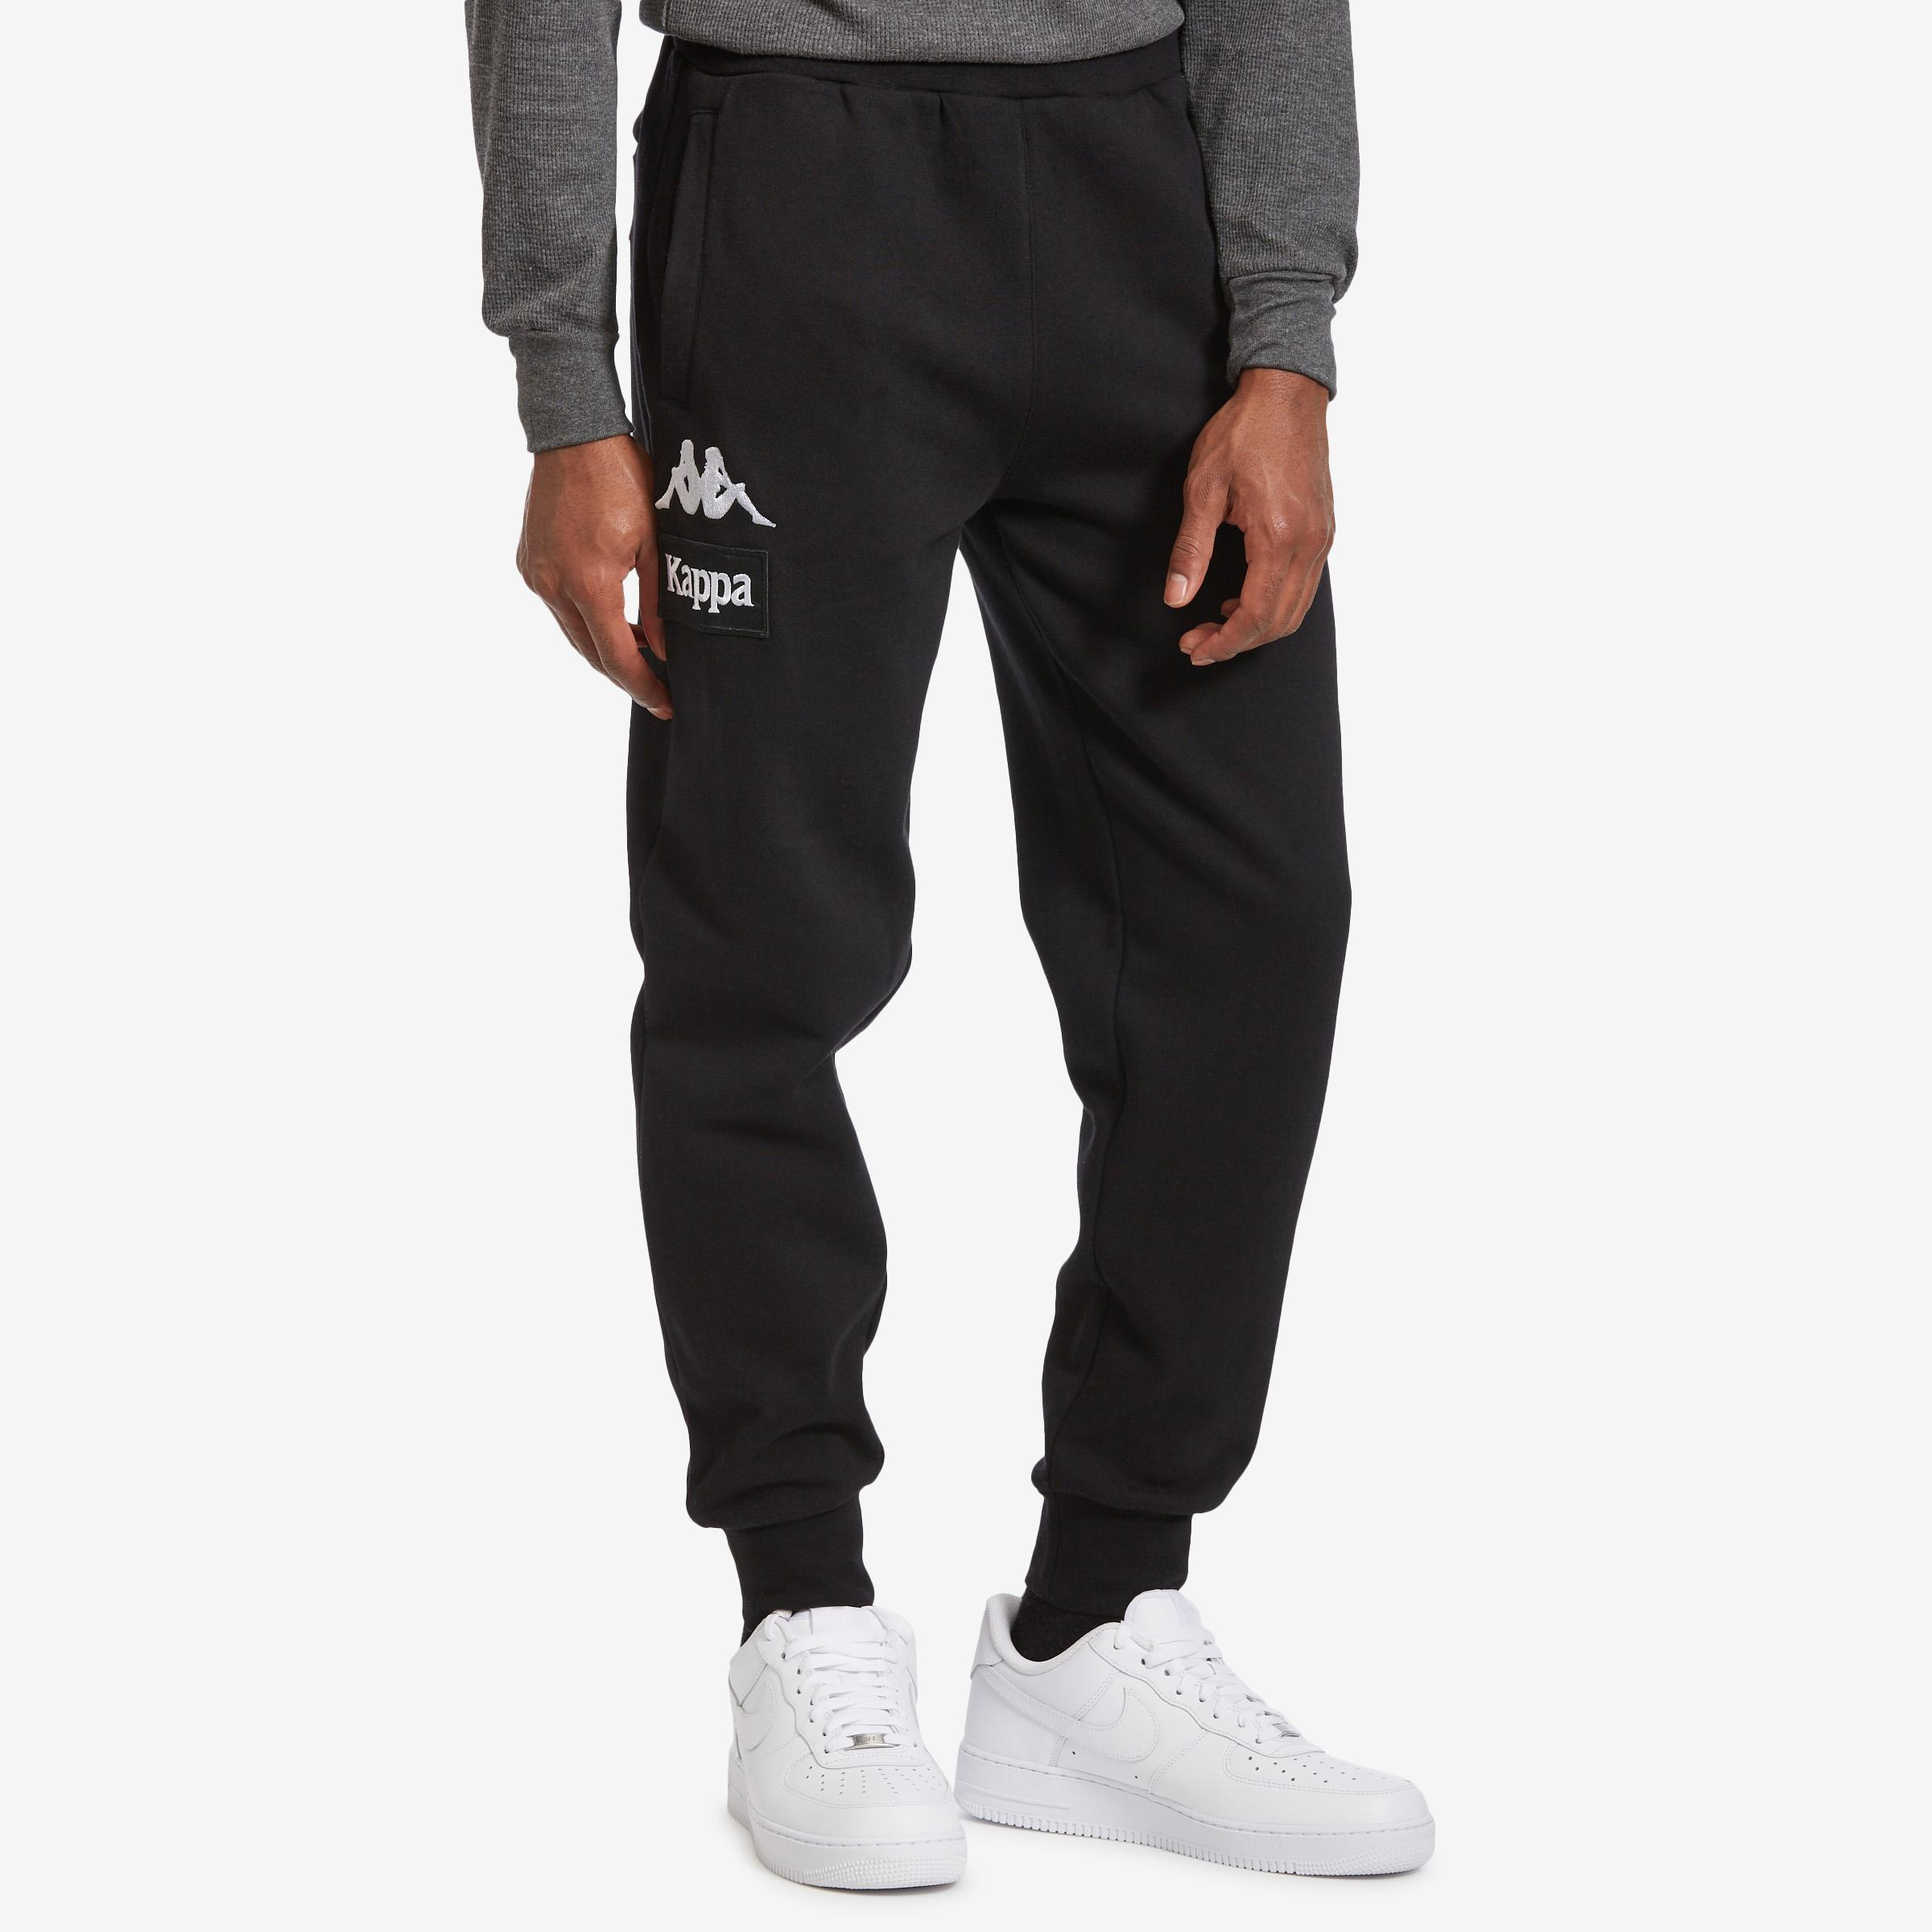 Men's Authentic La Barnie Sweatpants